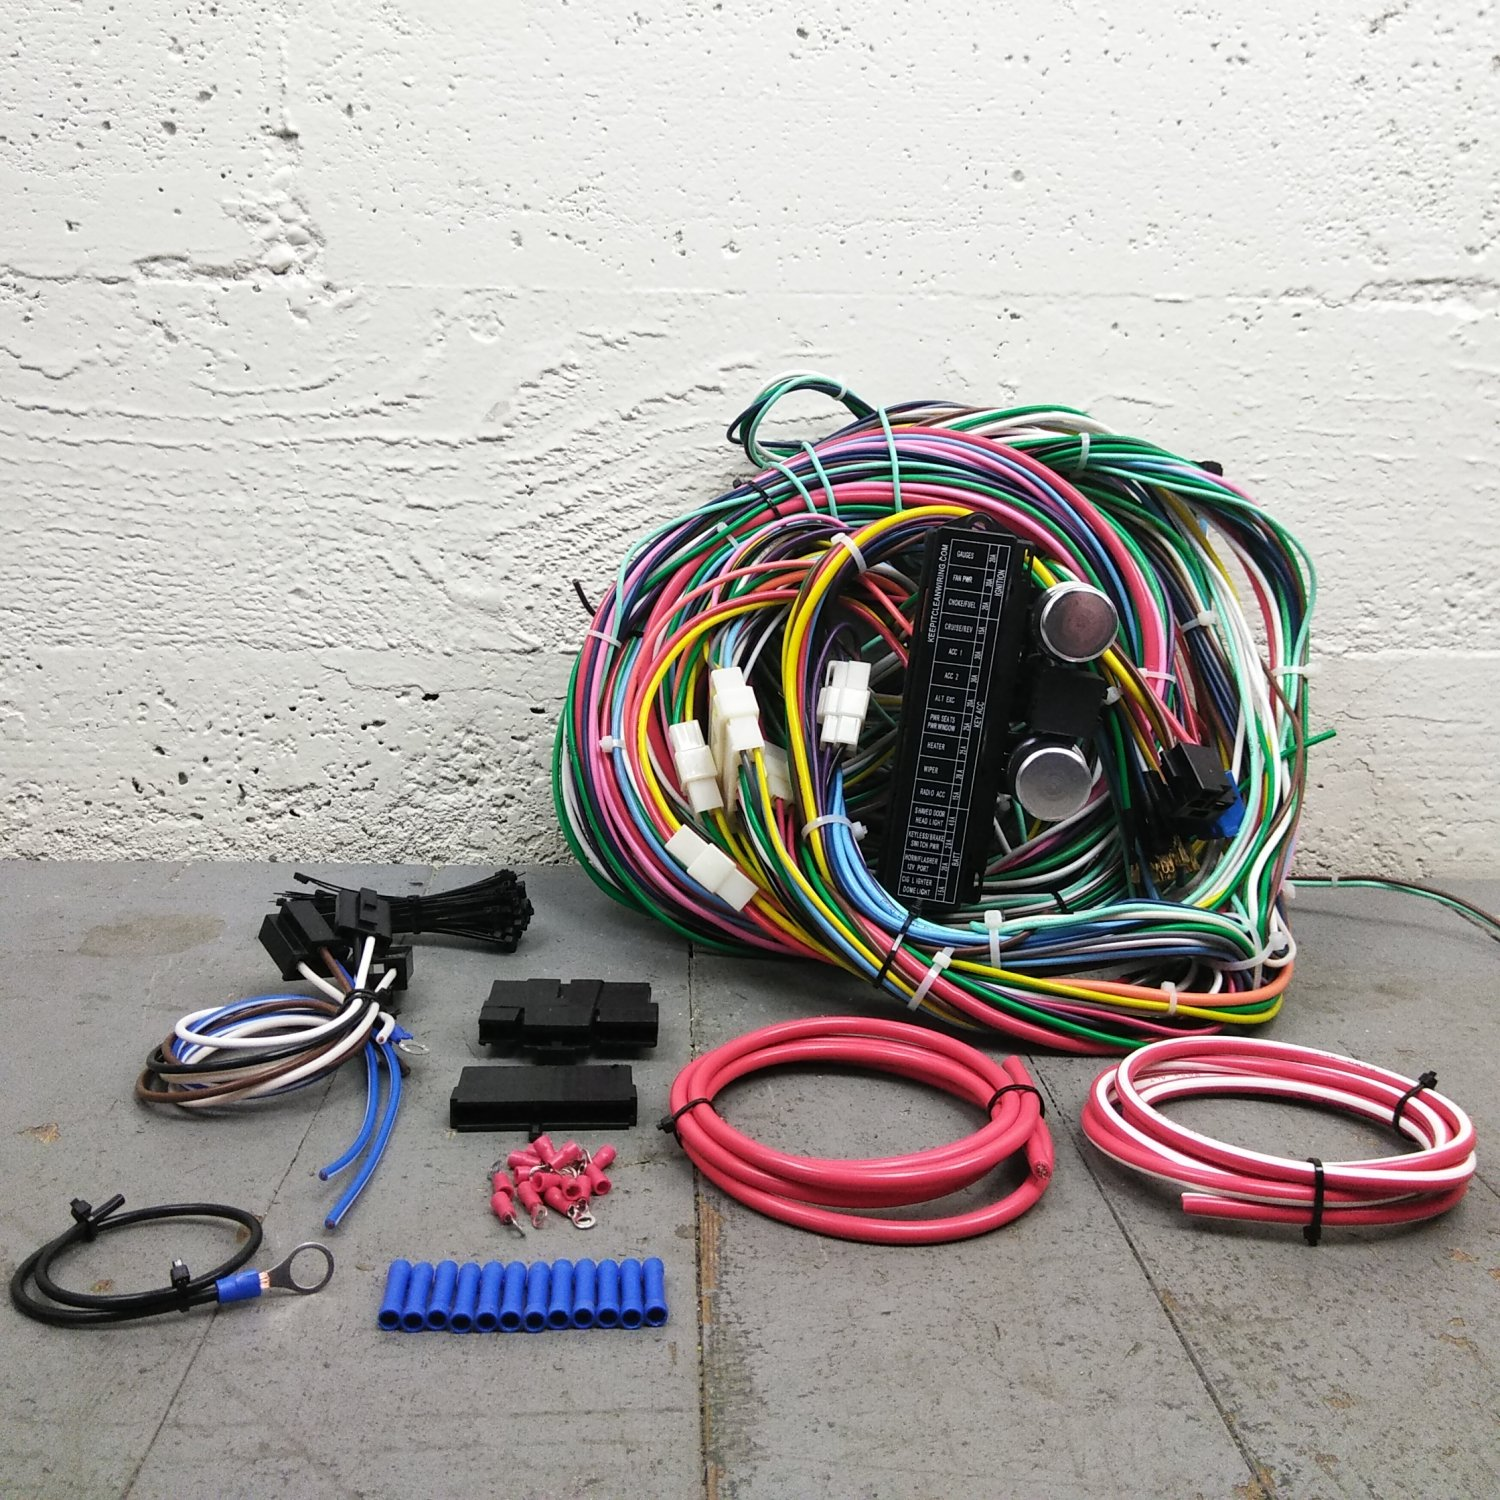 1971 - 1991 Ford Bronco Wire Harness Upgrade Kit fits painless new complete  KIC. Bar_Product_Description_C